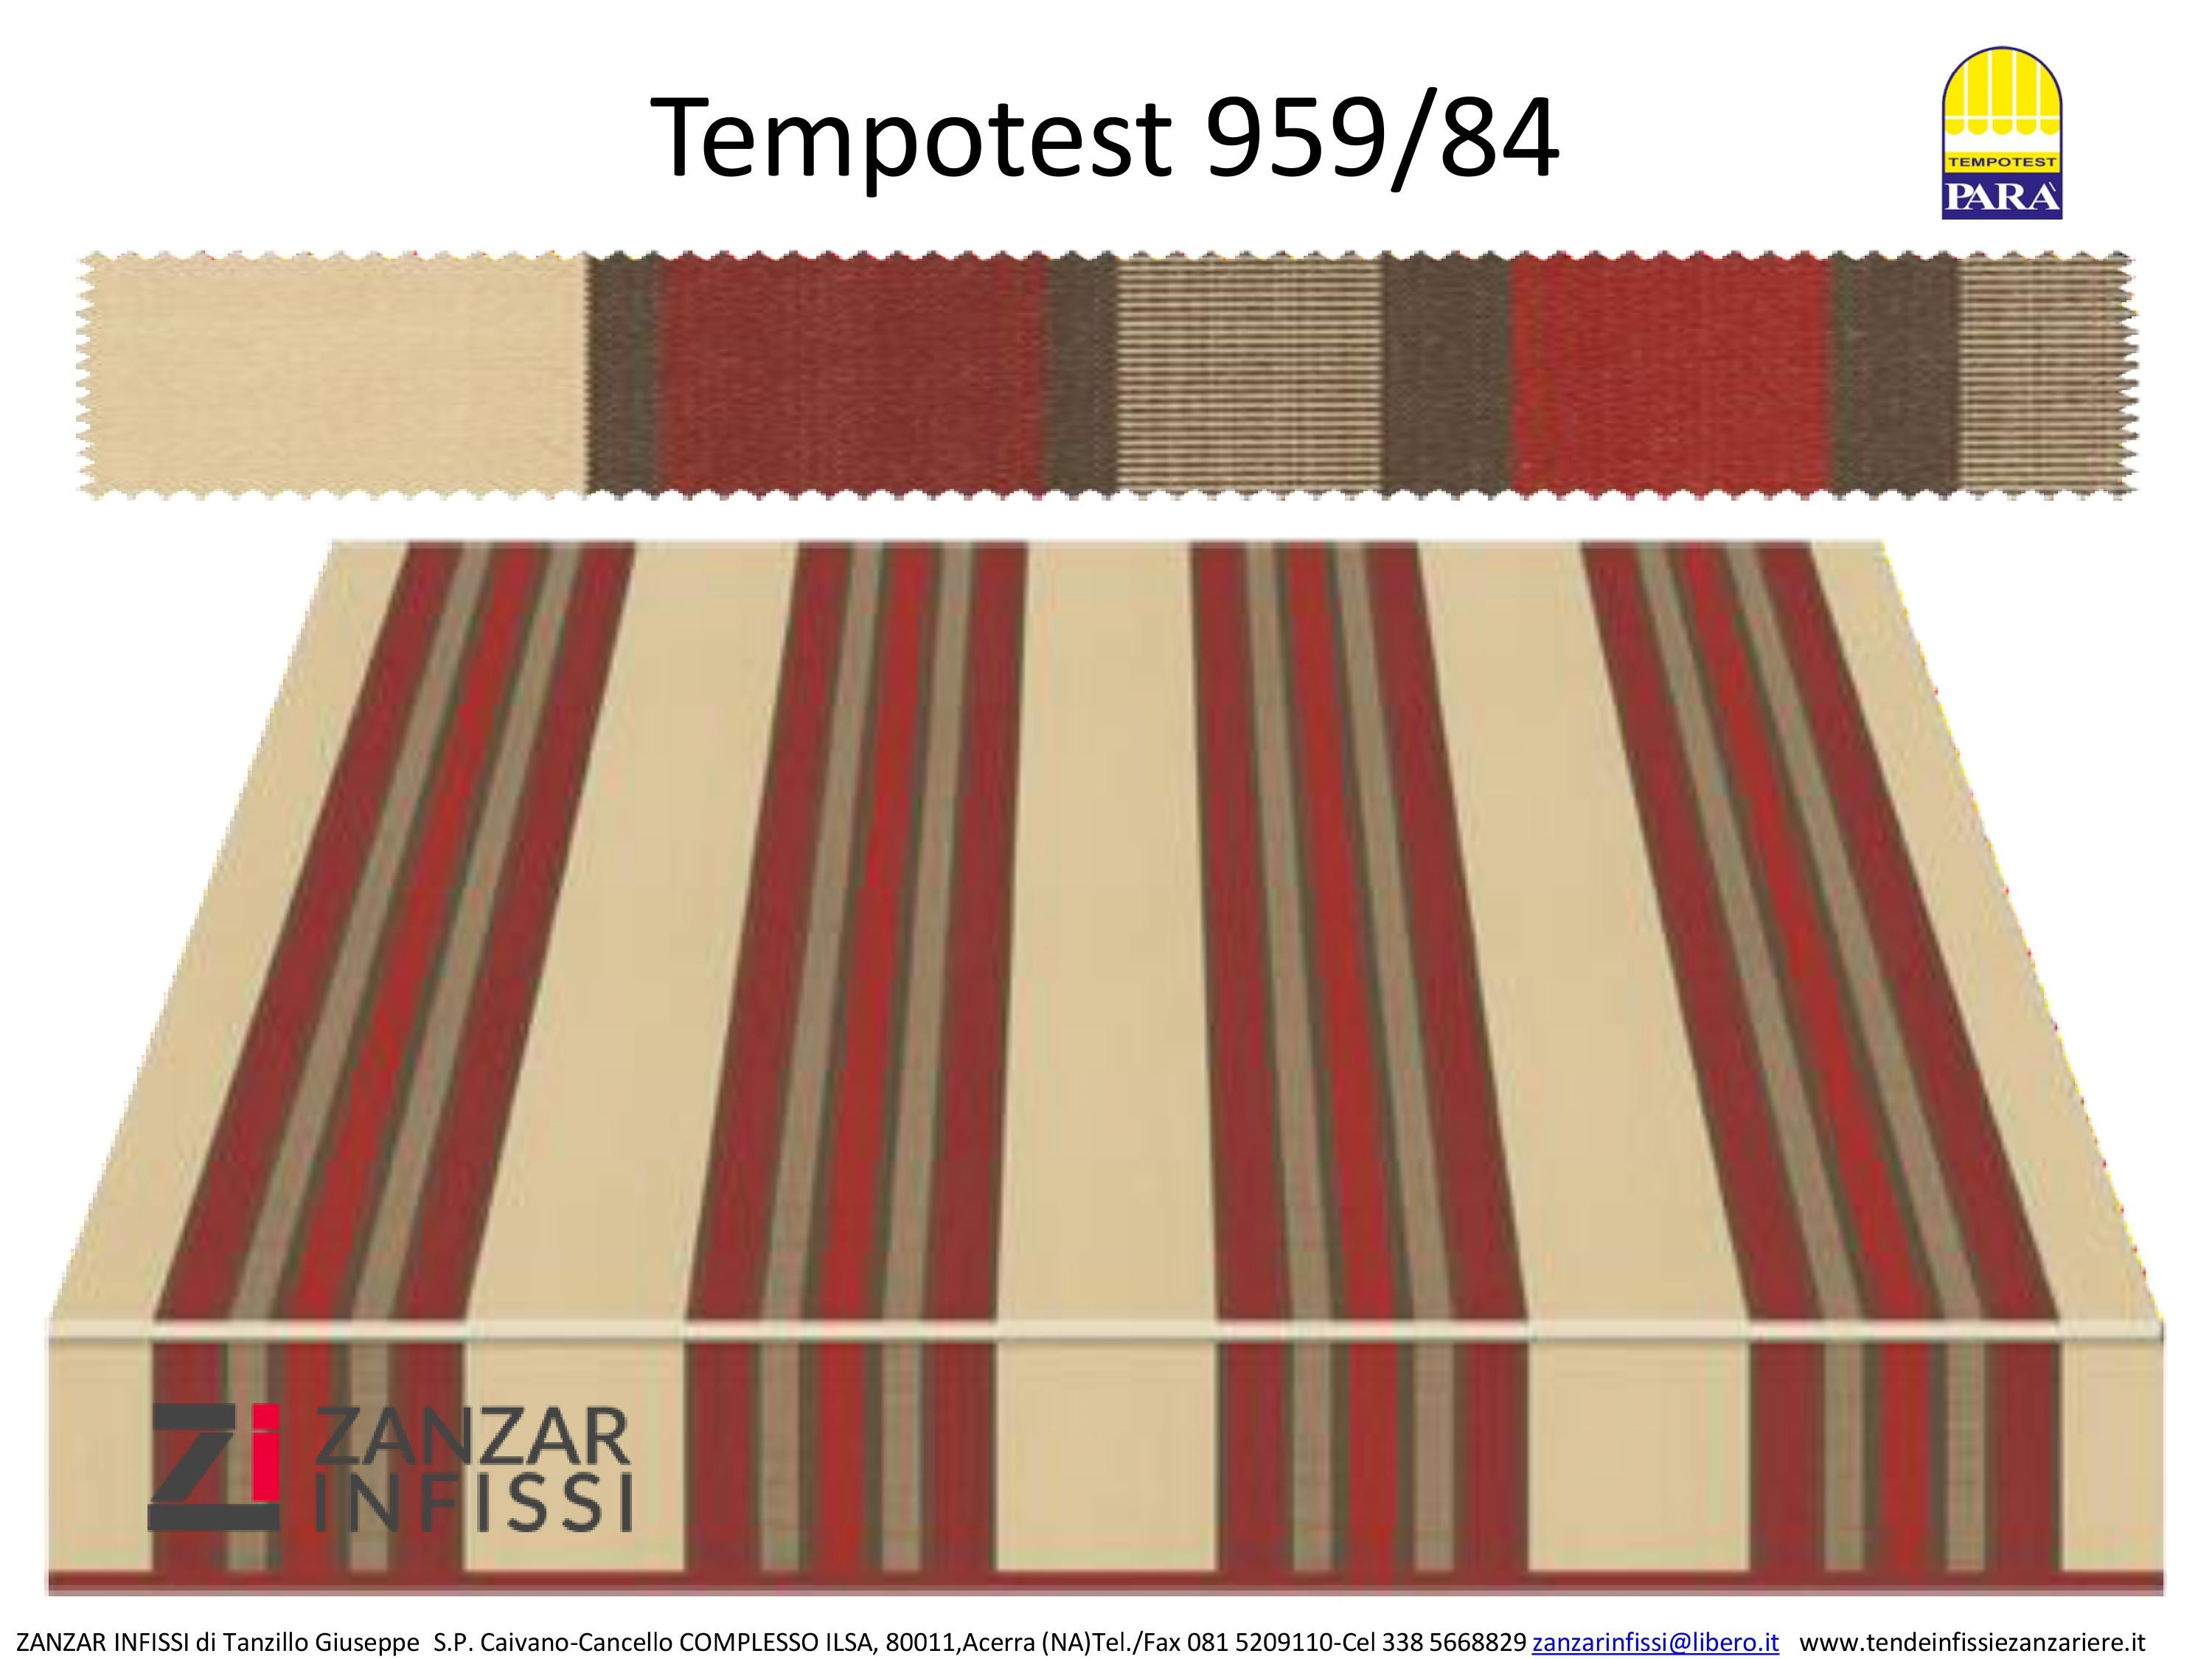 Tempotest 959/84